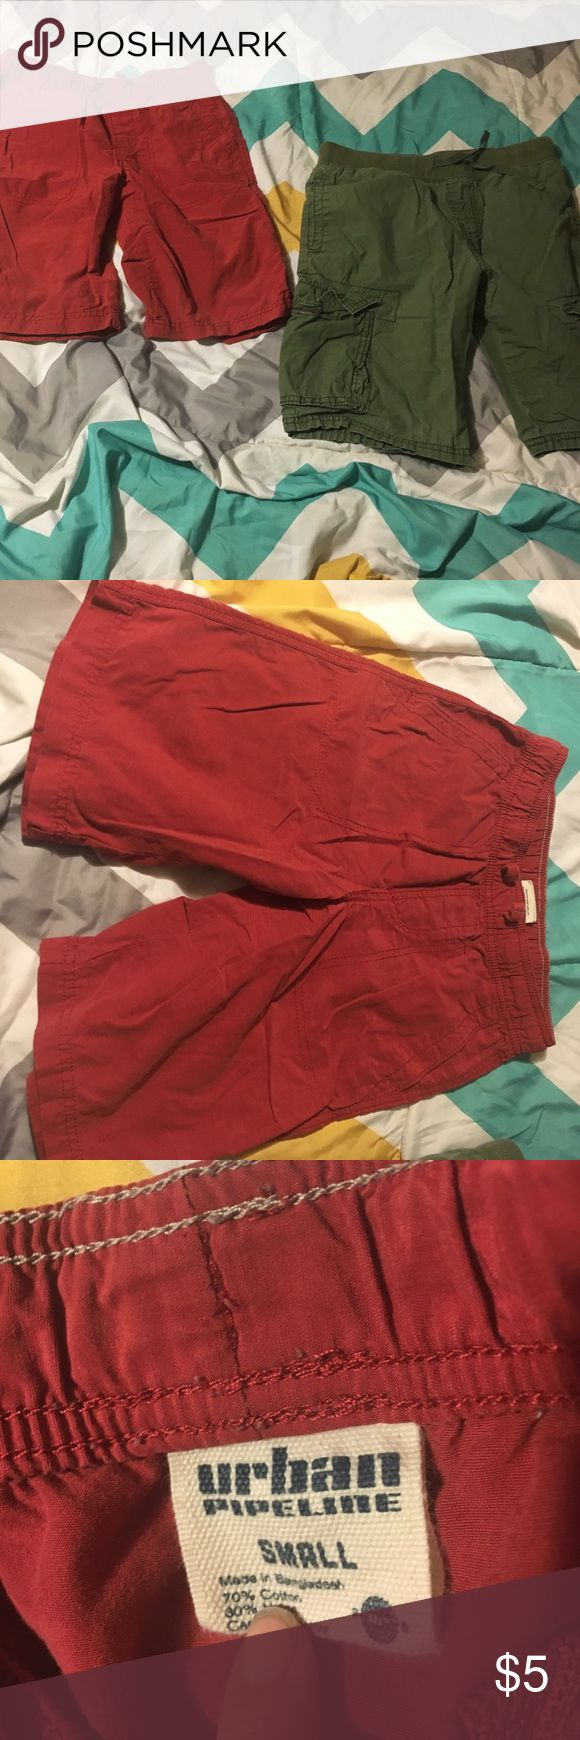 Boys cargo shorts 2 pair Red pair is boys small but fits like the green pair which is a medium. The red is urban pipeline and the green is old navy Bottoms Shorts